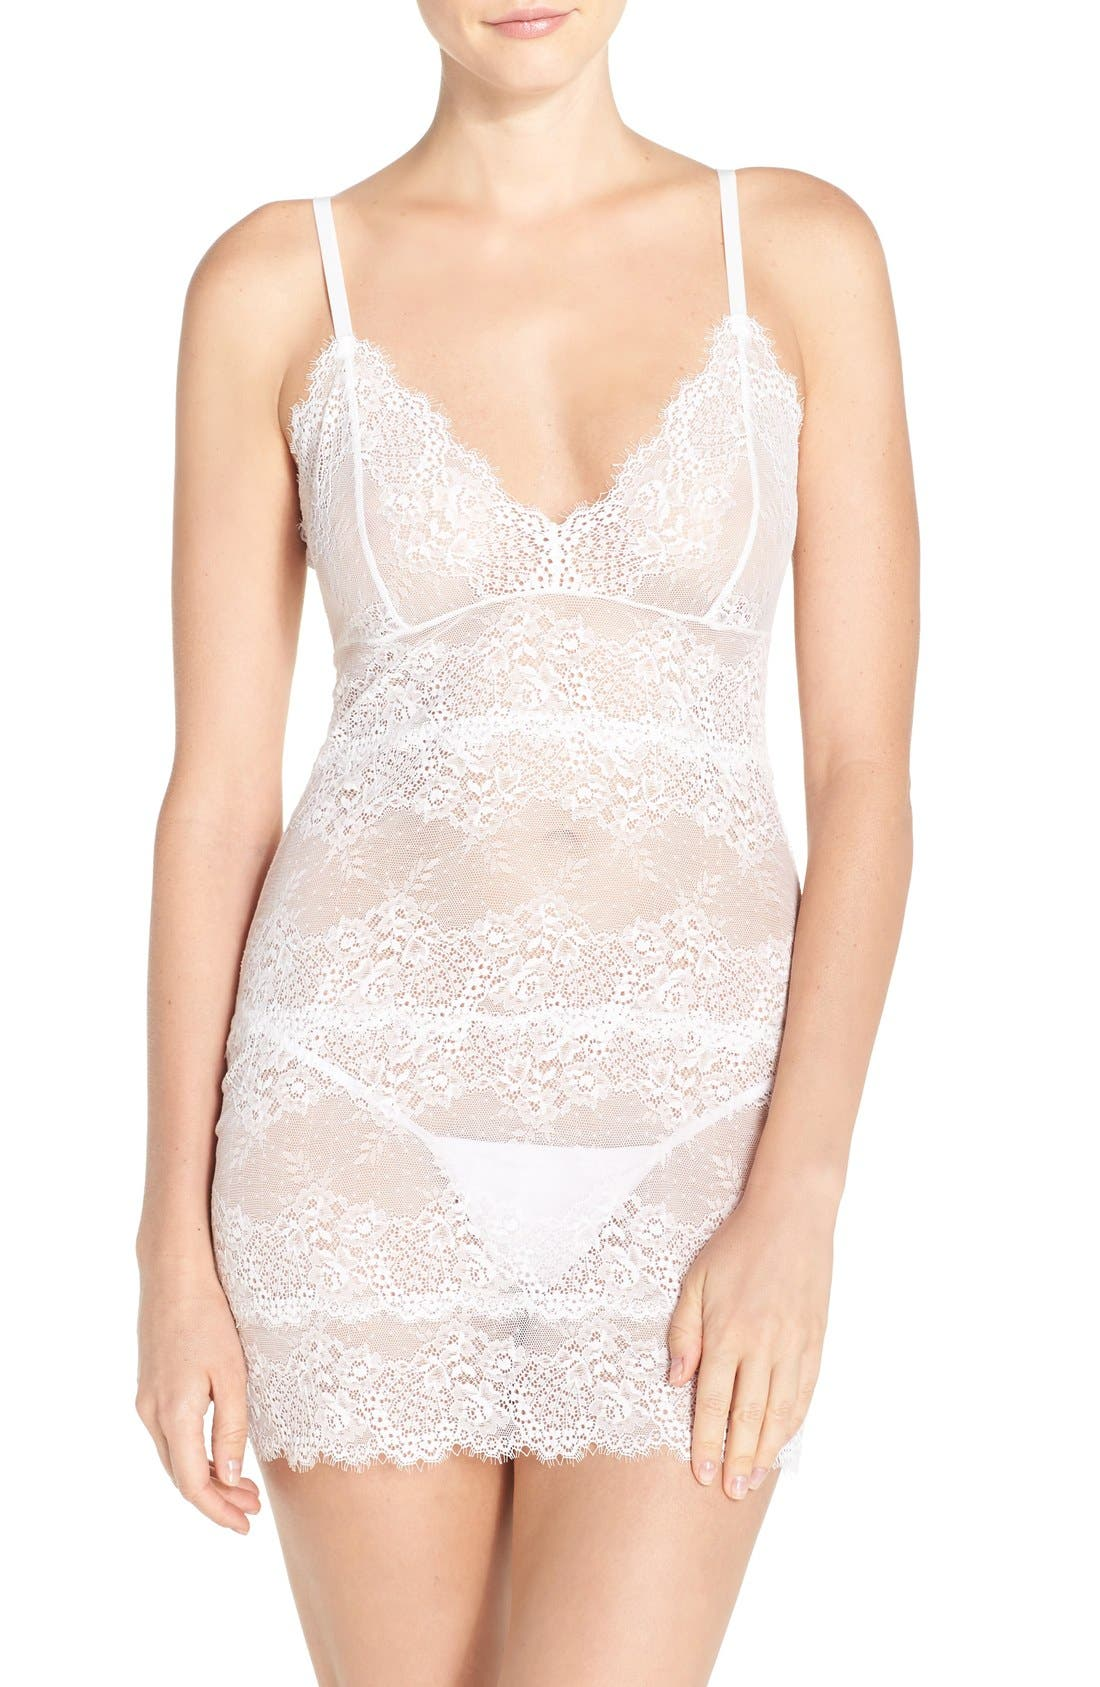 Honeymoon Too Lace Chemise,                         Main,                         color, 100